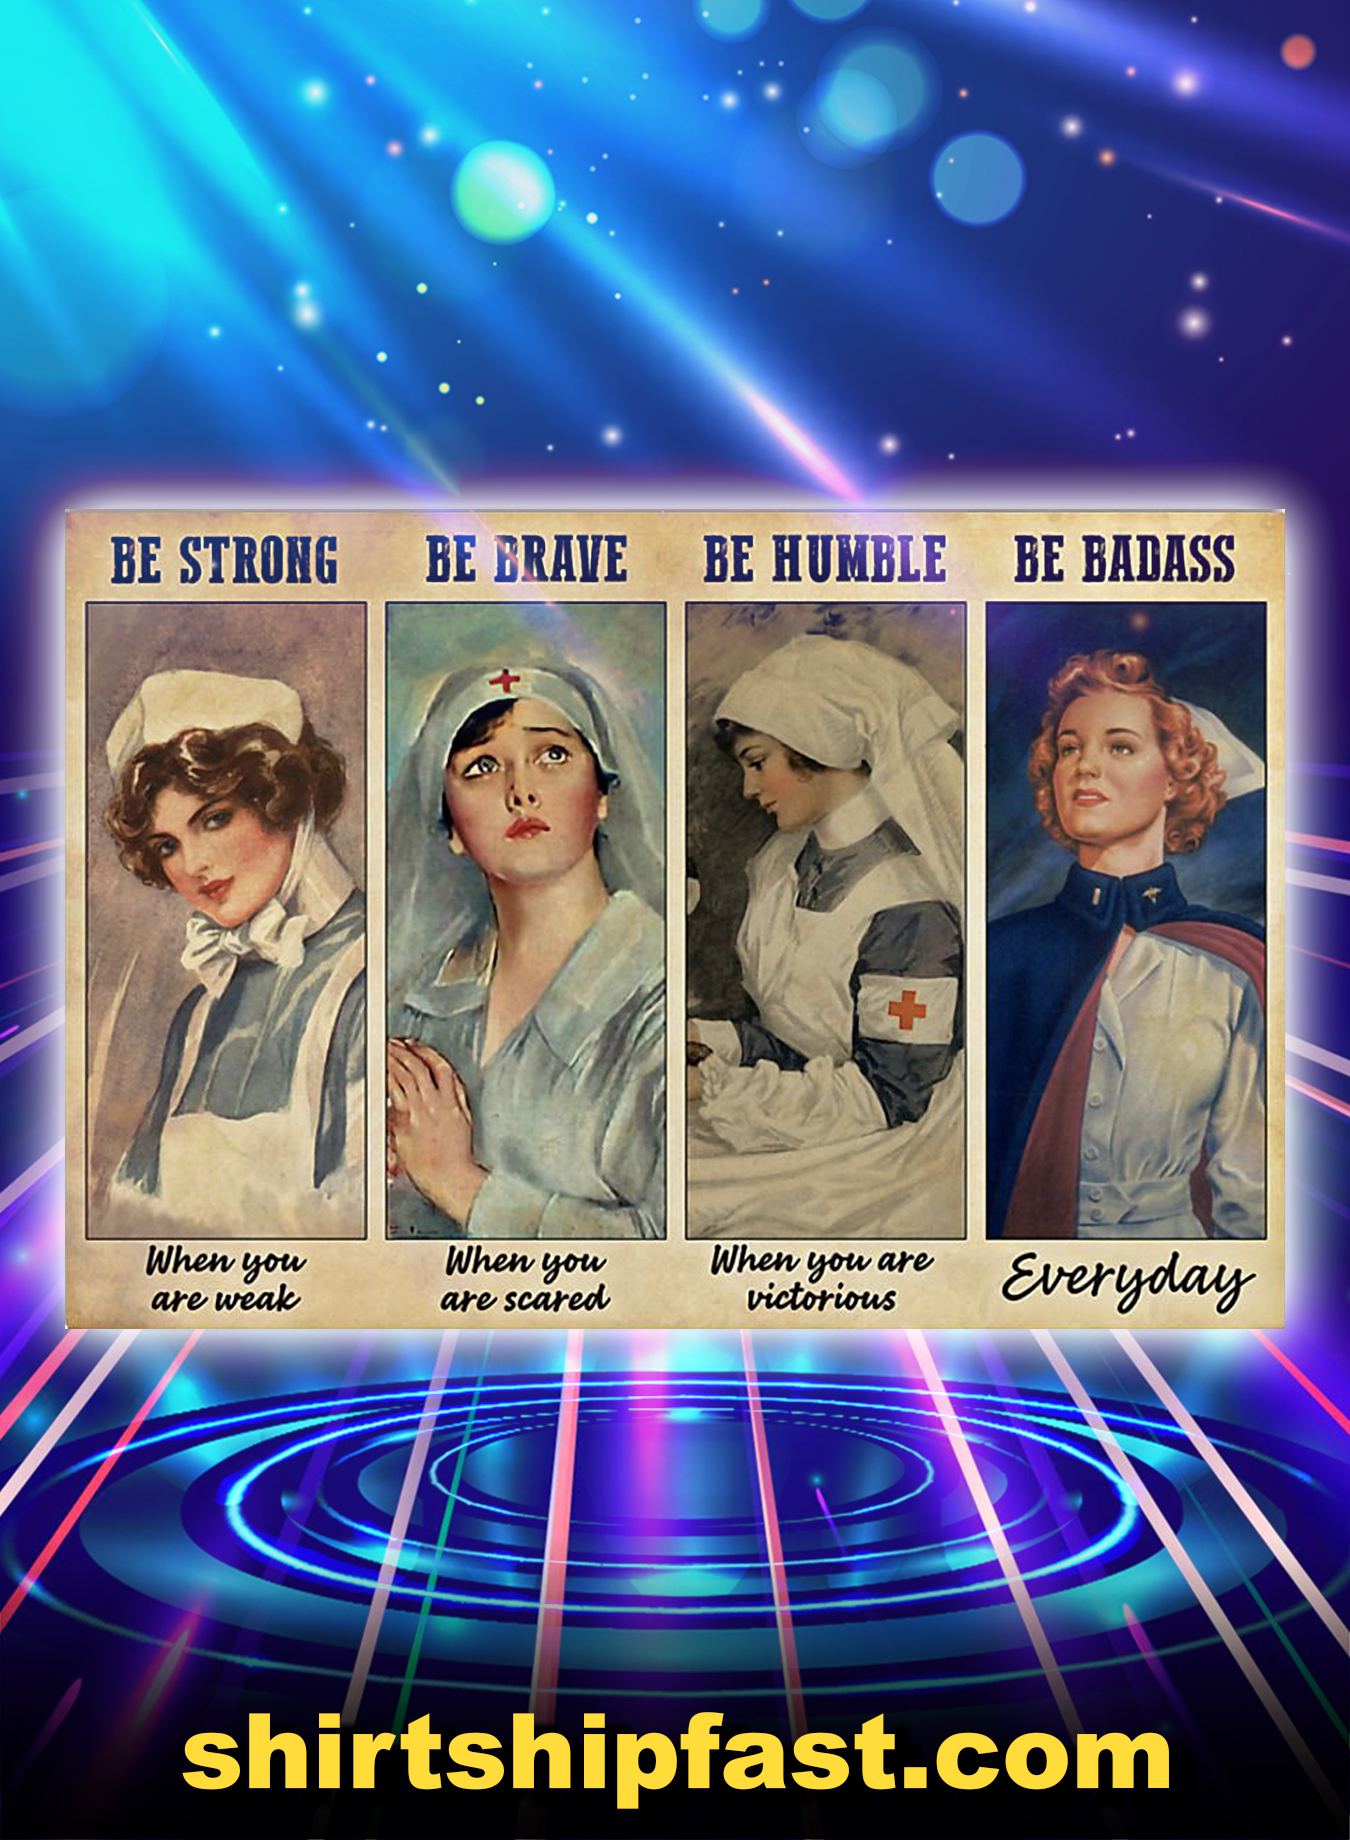 Yoga girl Nurses be strong be brave be humble be badass poster - A2